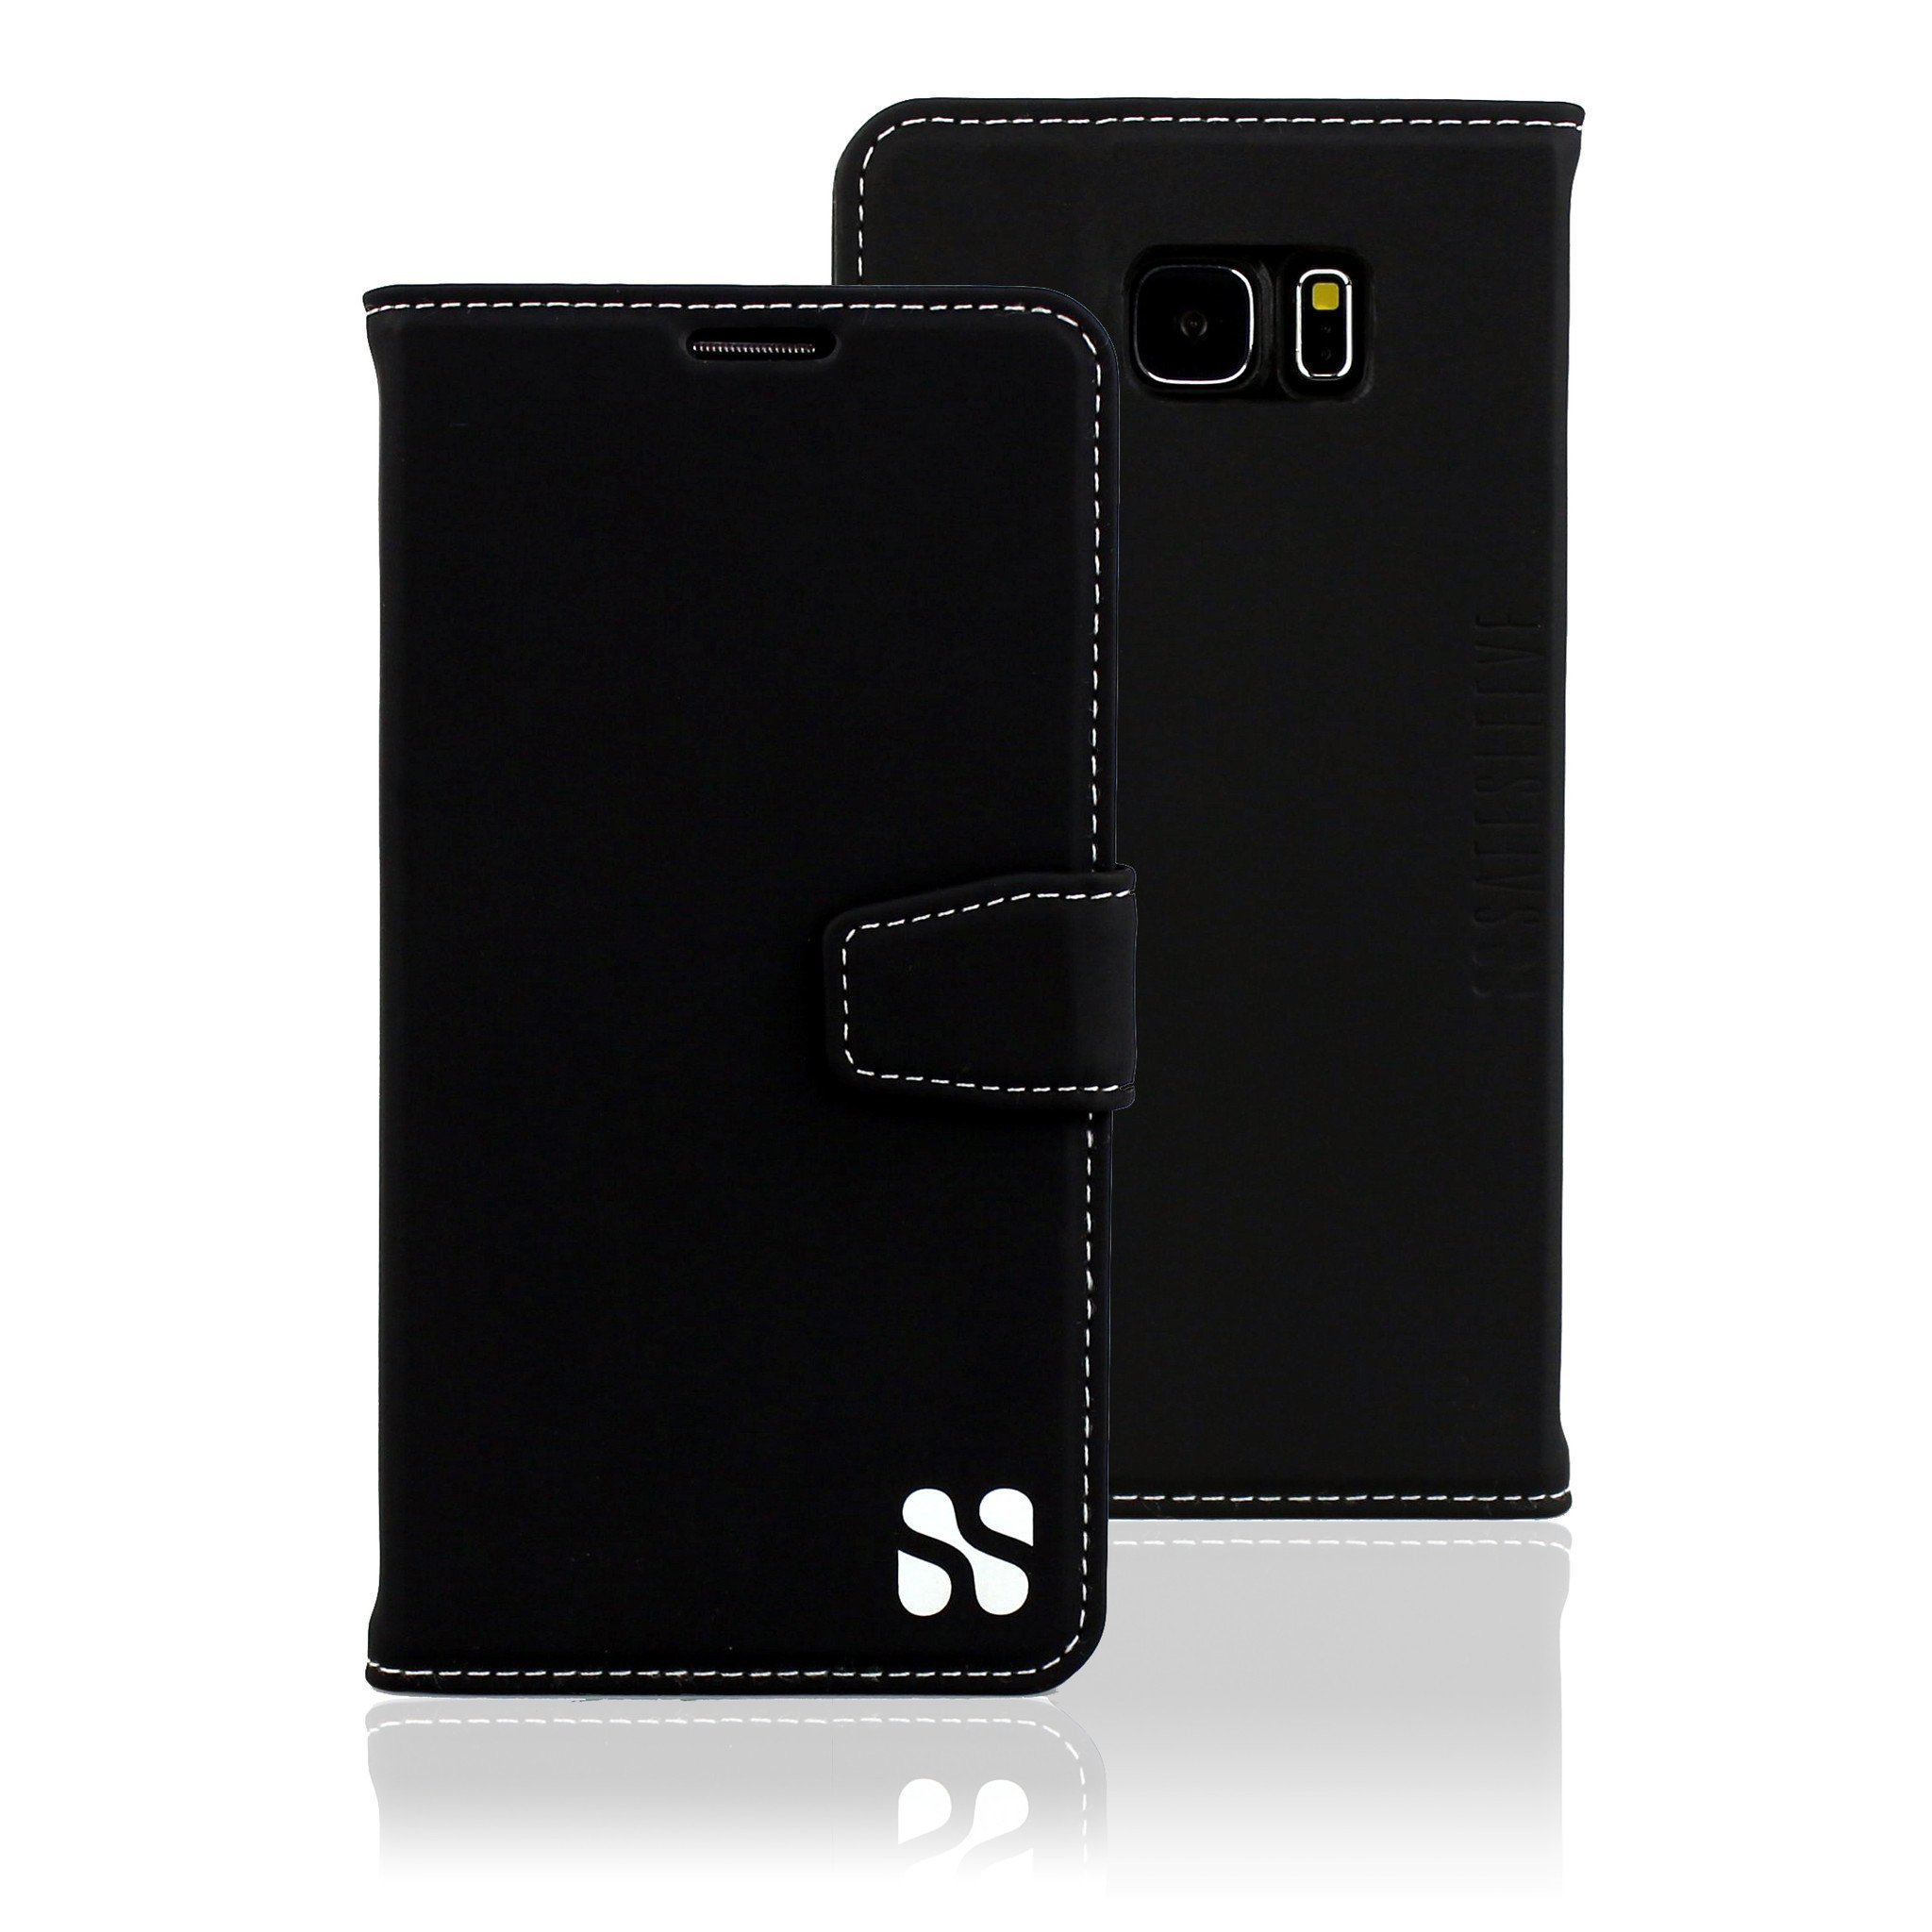 Galaxy S7 Cell Phone Radiation Blocker and RFID Wallet Case by SafeSleeve (Black)